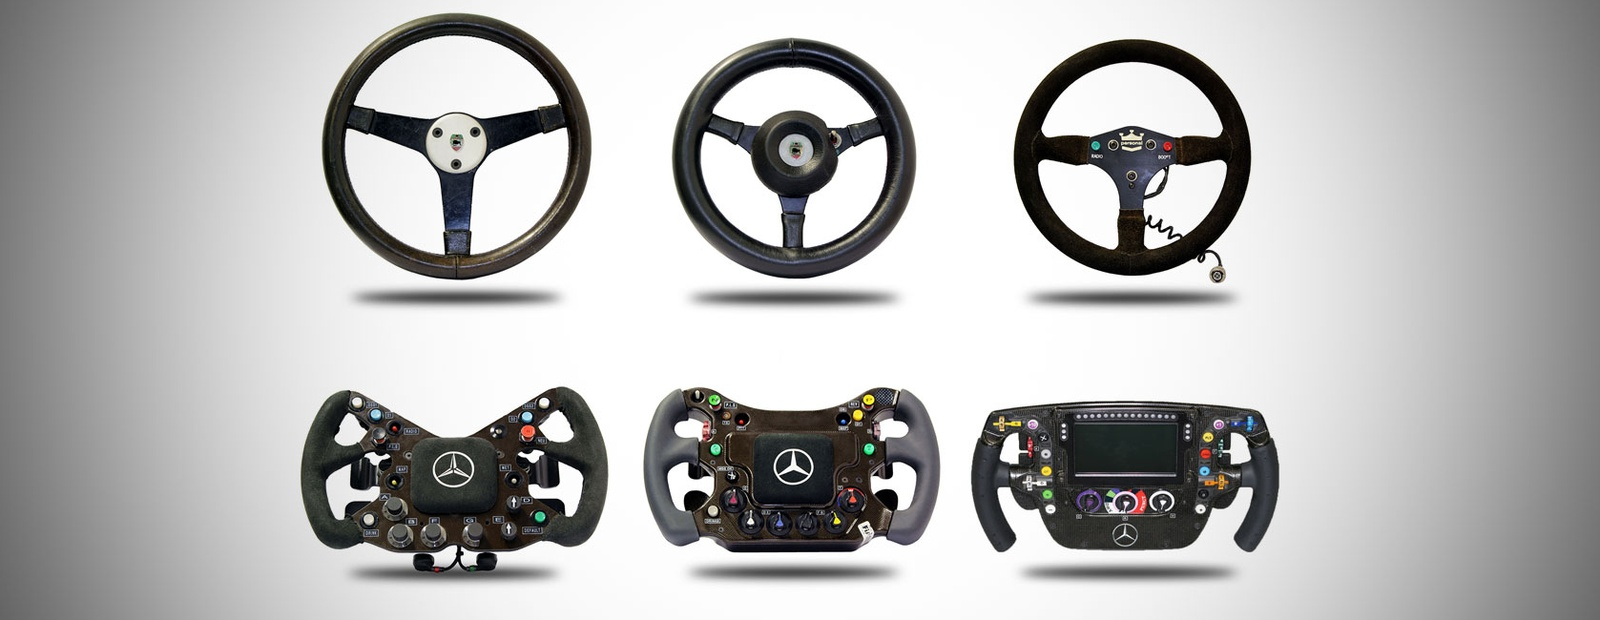 Mclaren Formula 1 Through The Ages Steering Wheels